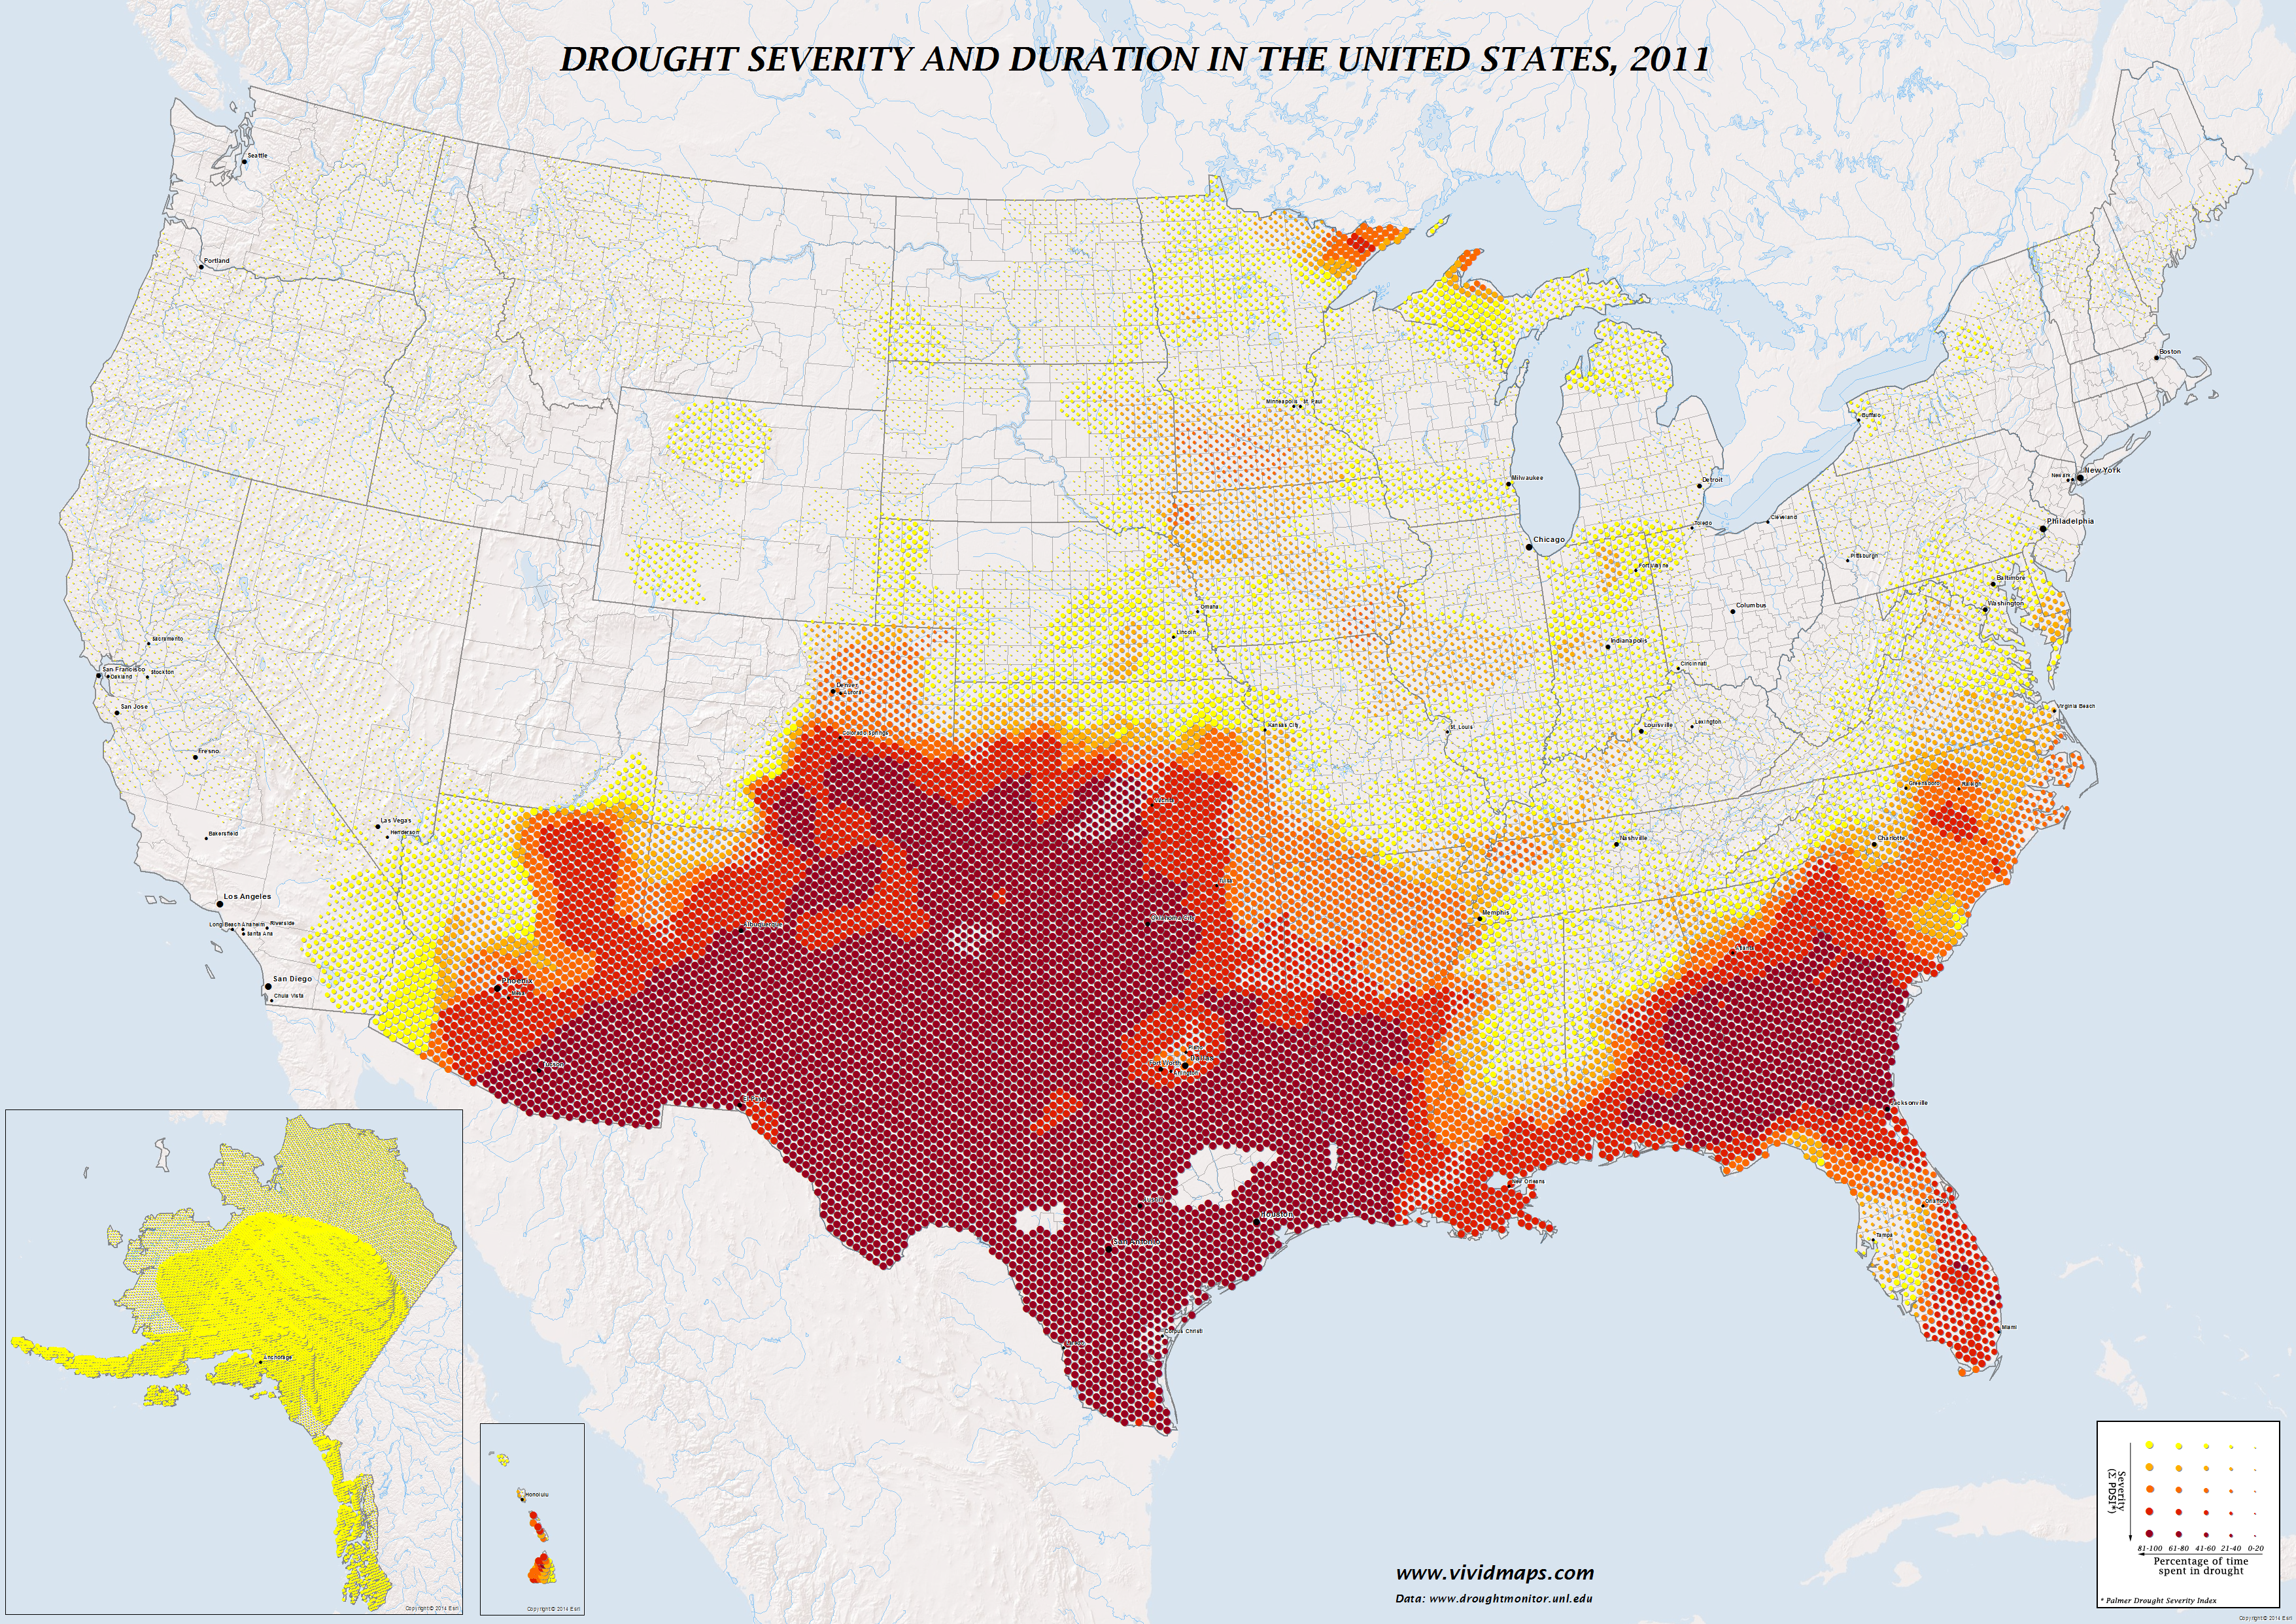 Drought severity and duration in the United States (2011)